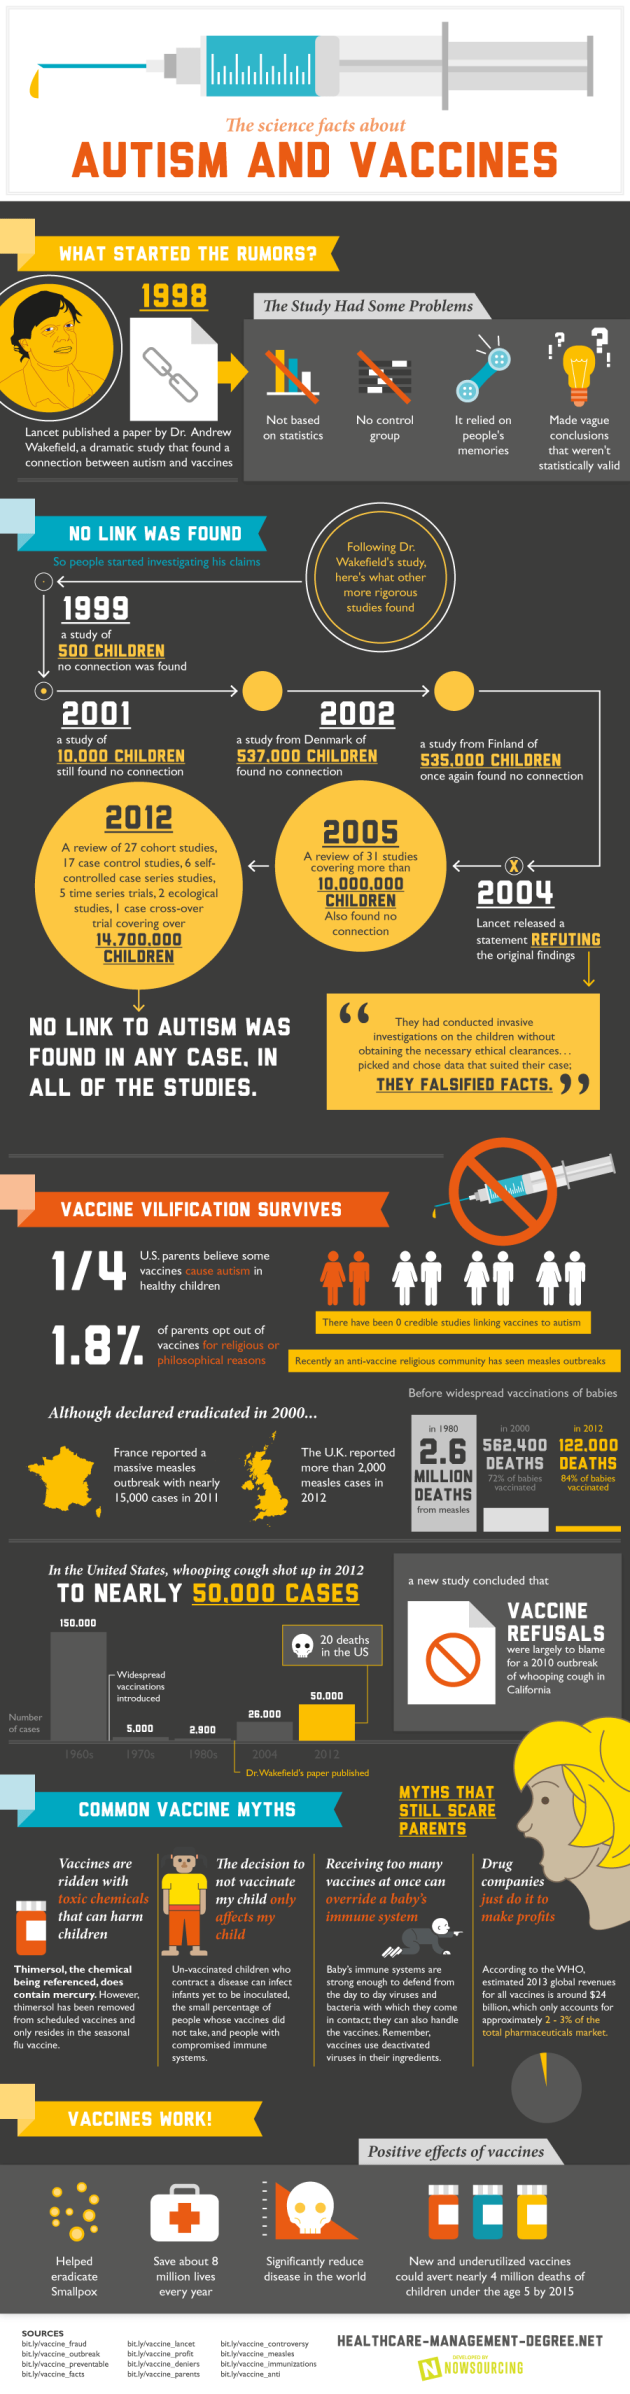 vaccines-and-autism-89a95934a2e5e6433d229e2f44ee4b8f